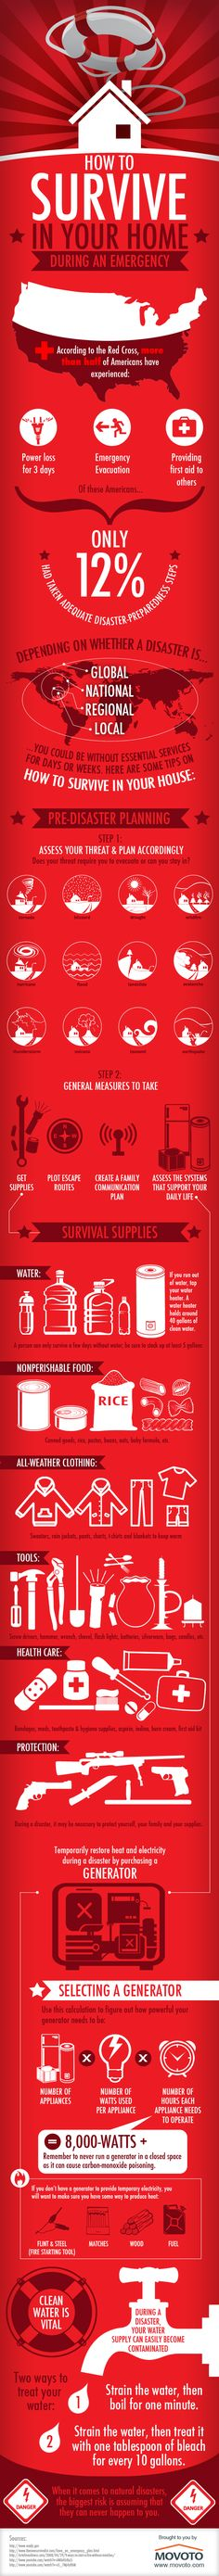 How to survive in your home during an emergency